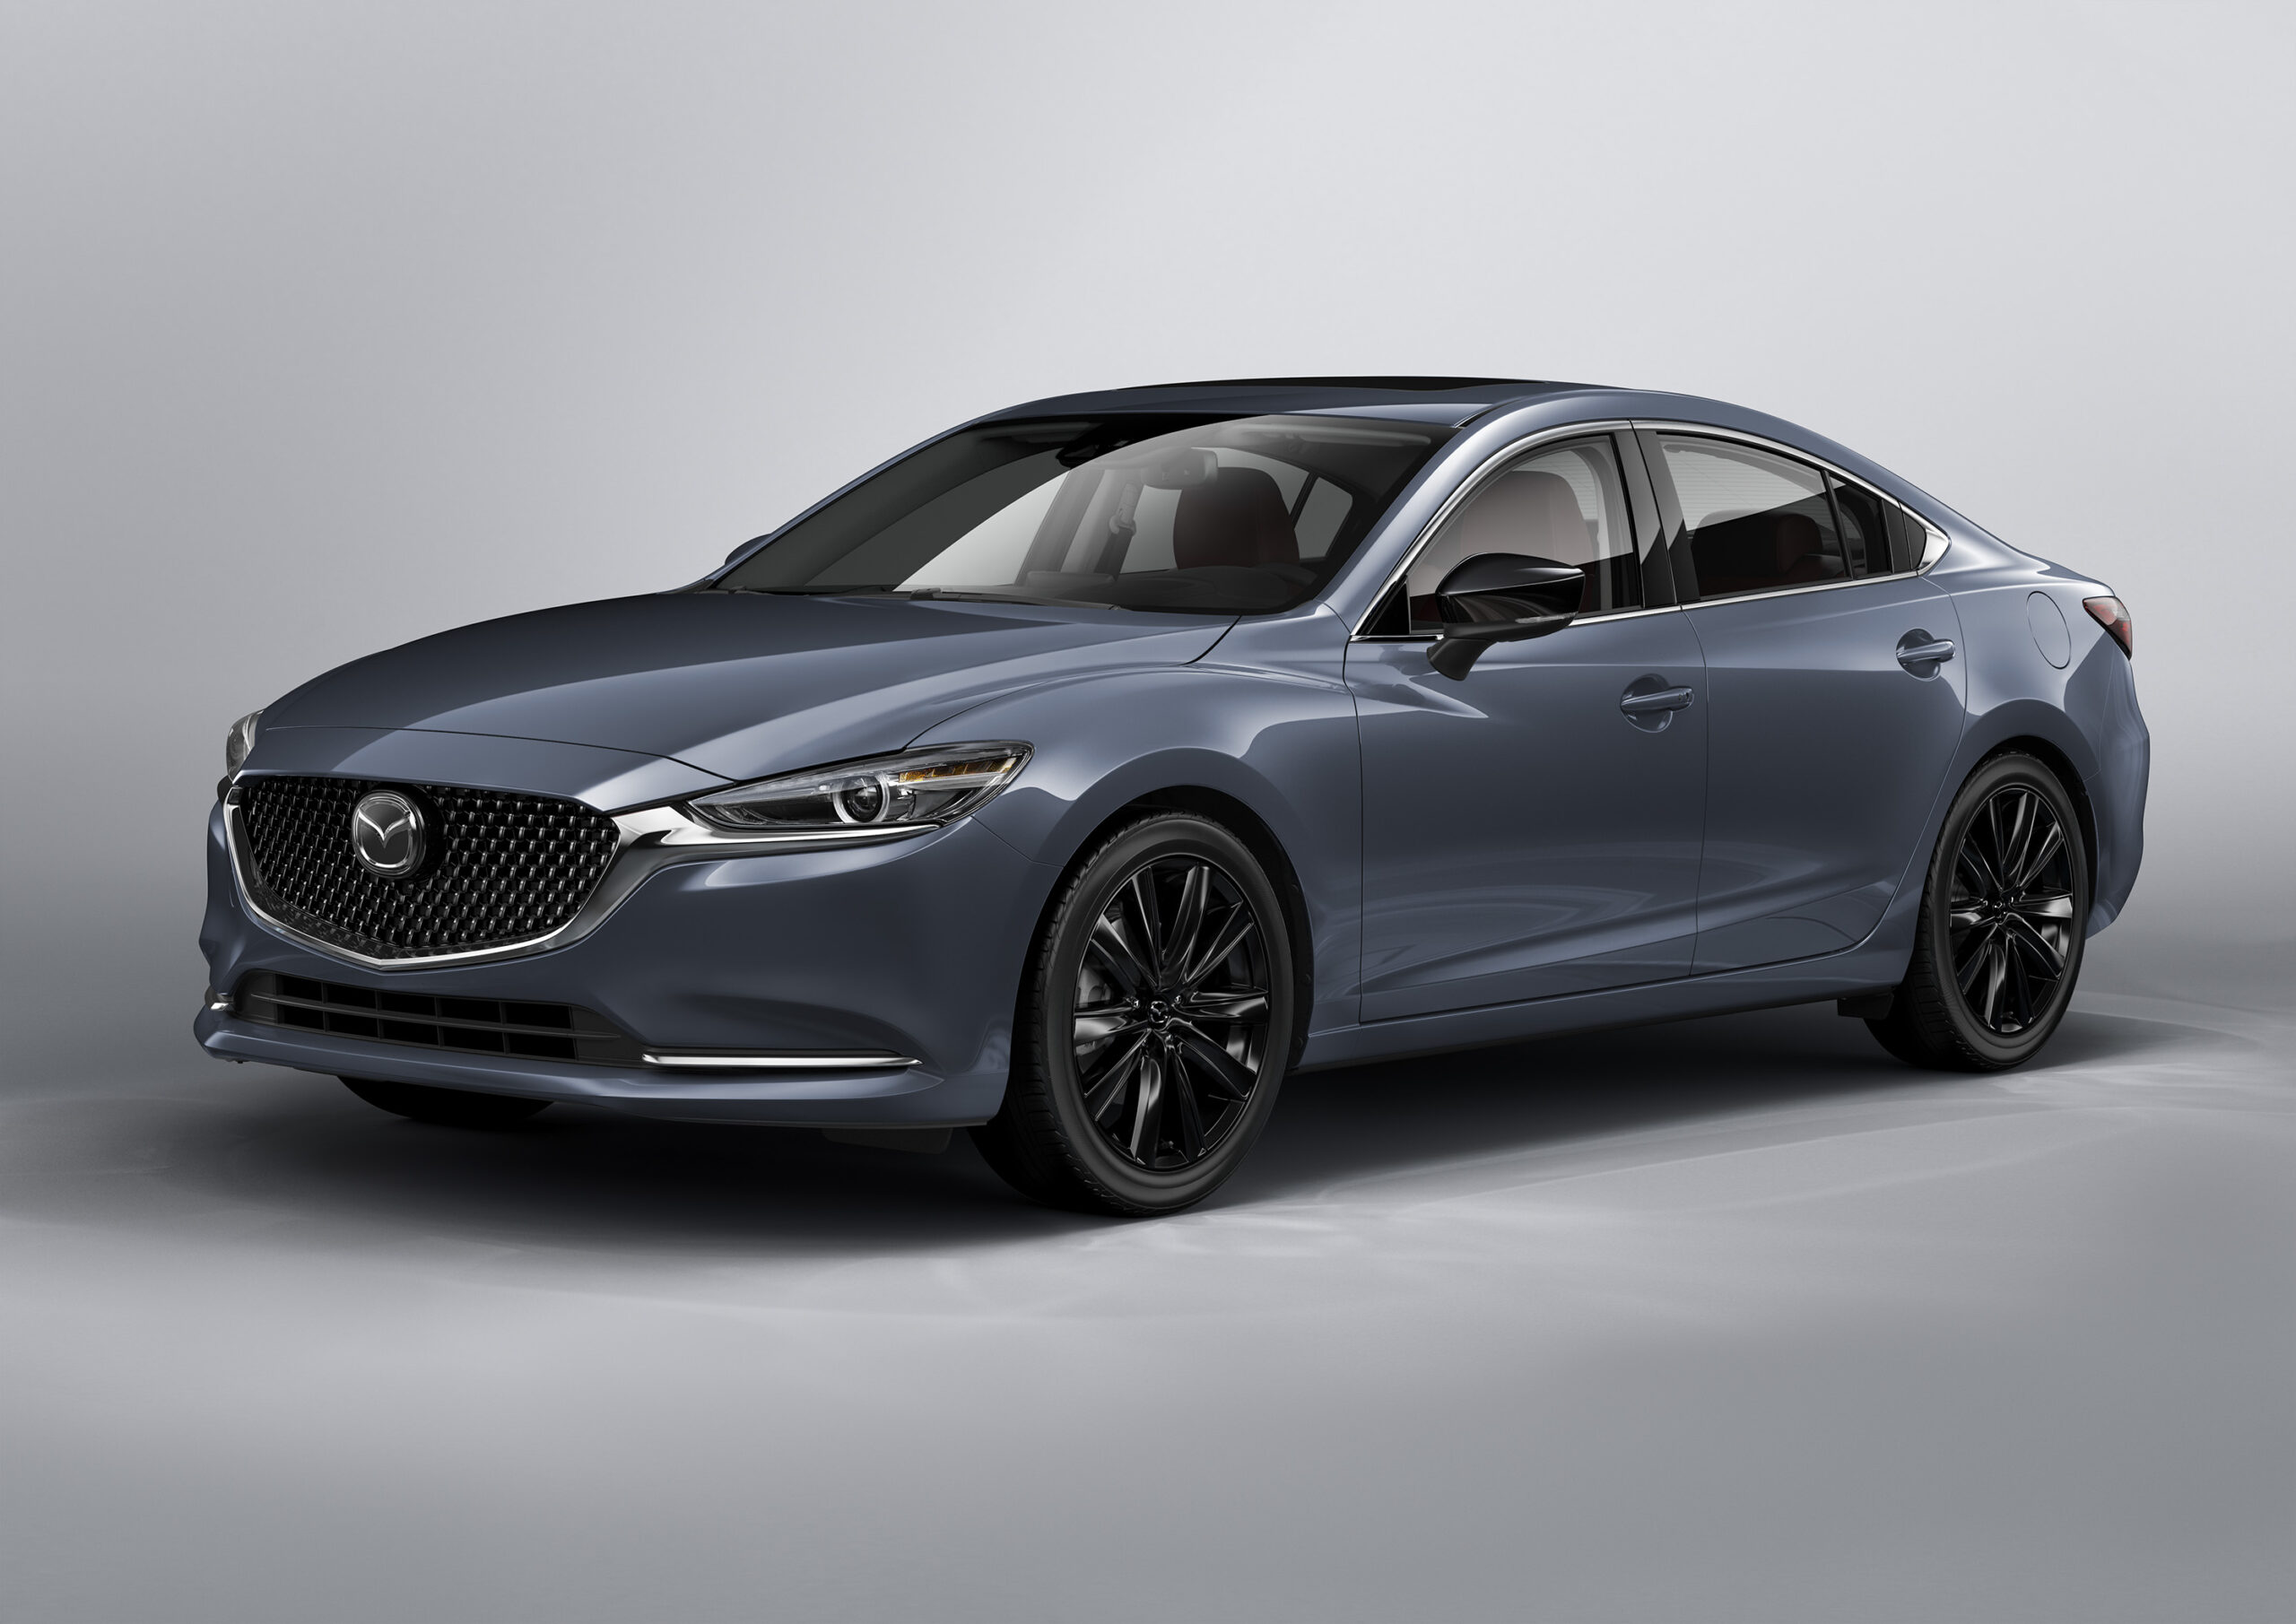 MAZDA NAMED U.S. NEWS & WORLD REPORT BEST CAR BRAND FOR 6TH CONSECUTIVE YEAR BRANDSPURNG1